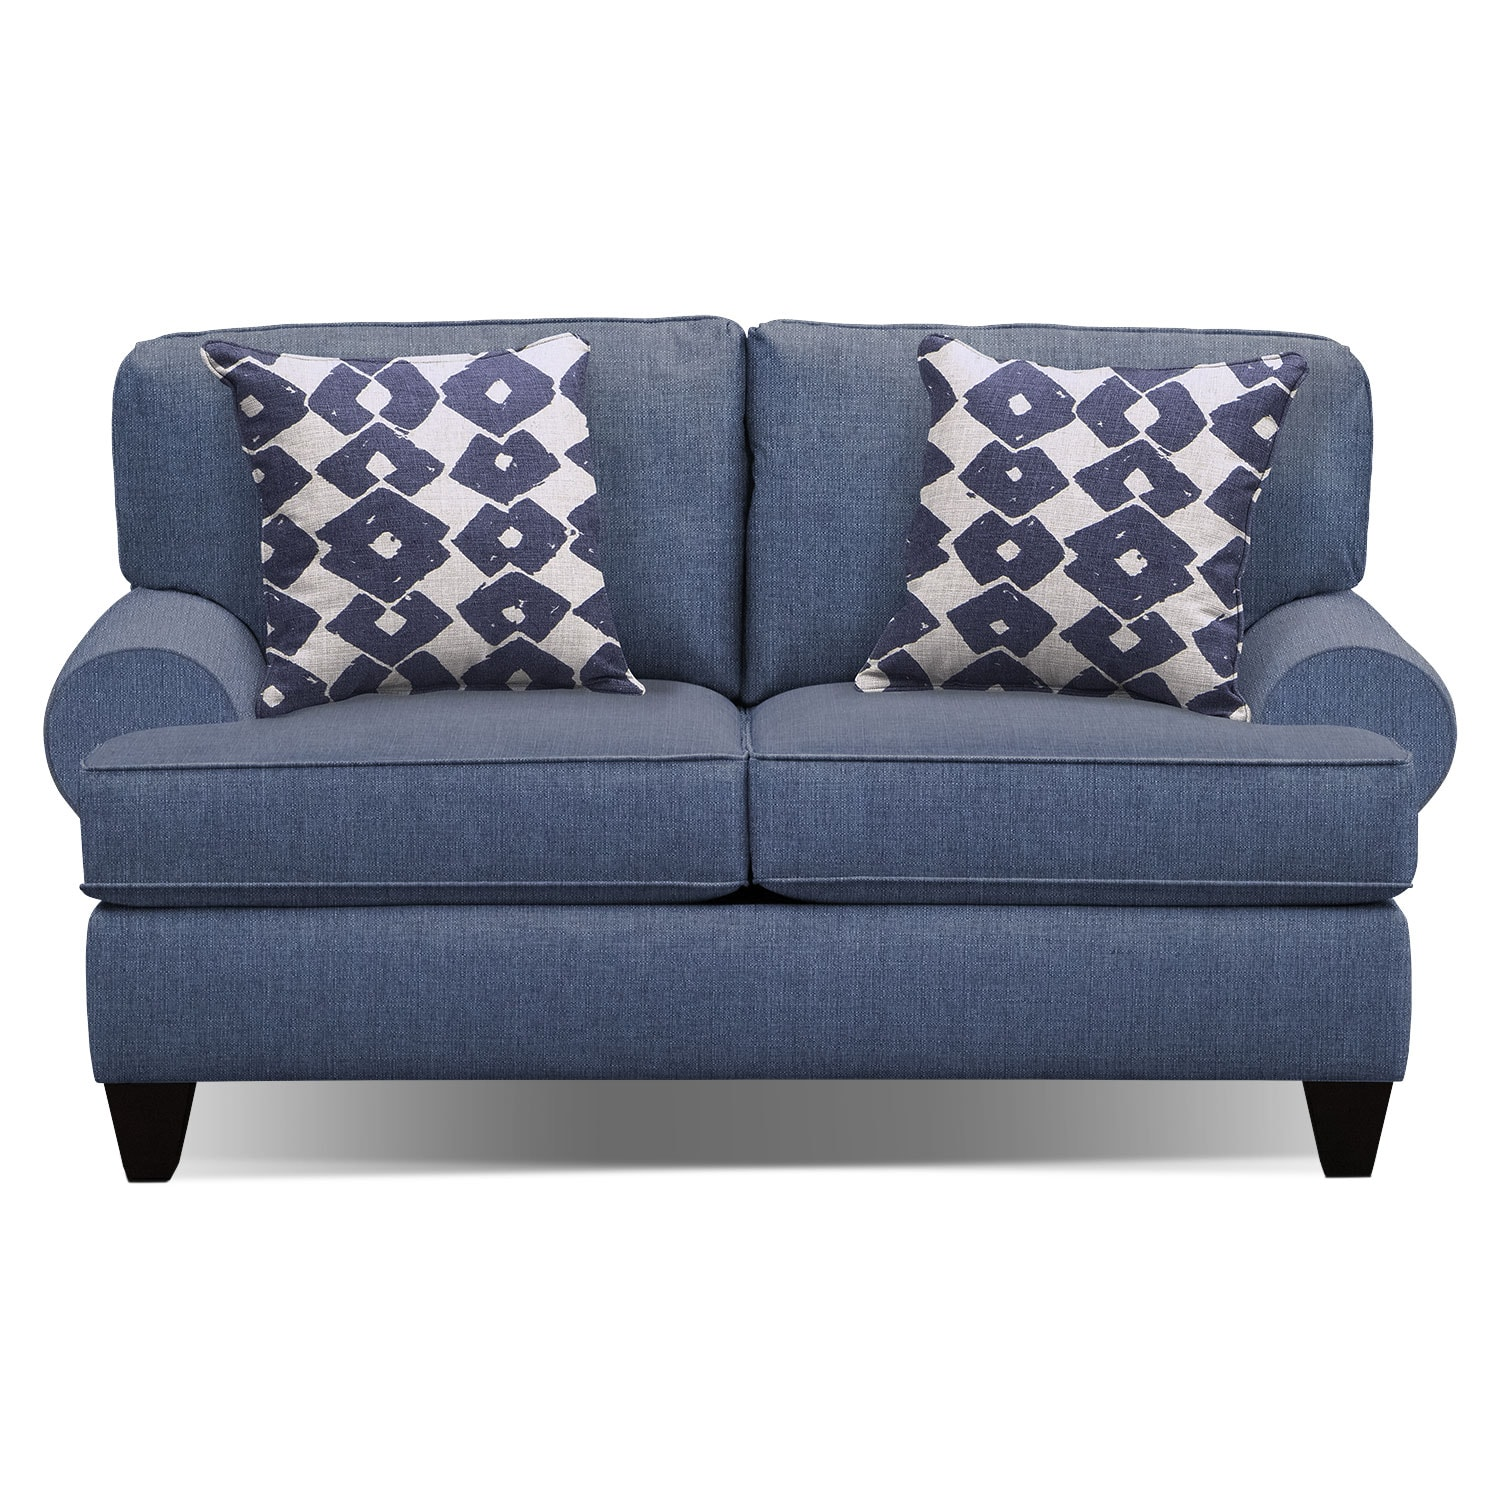 "Living Room Furniture - Bailey Blue 67"" Memory Foam Sleeper Sofa"